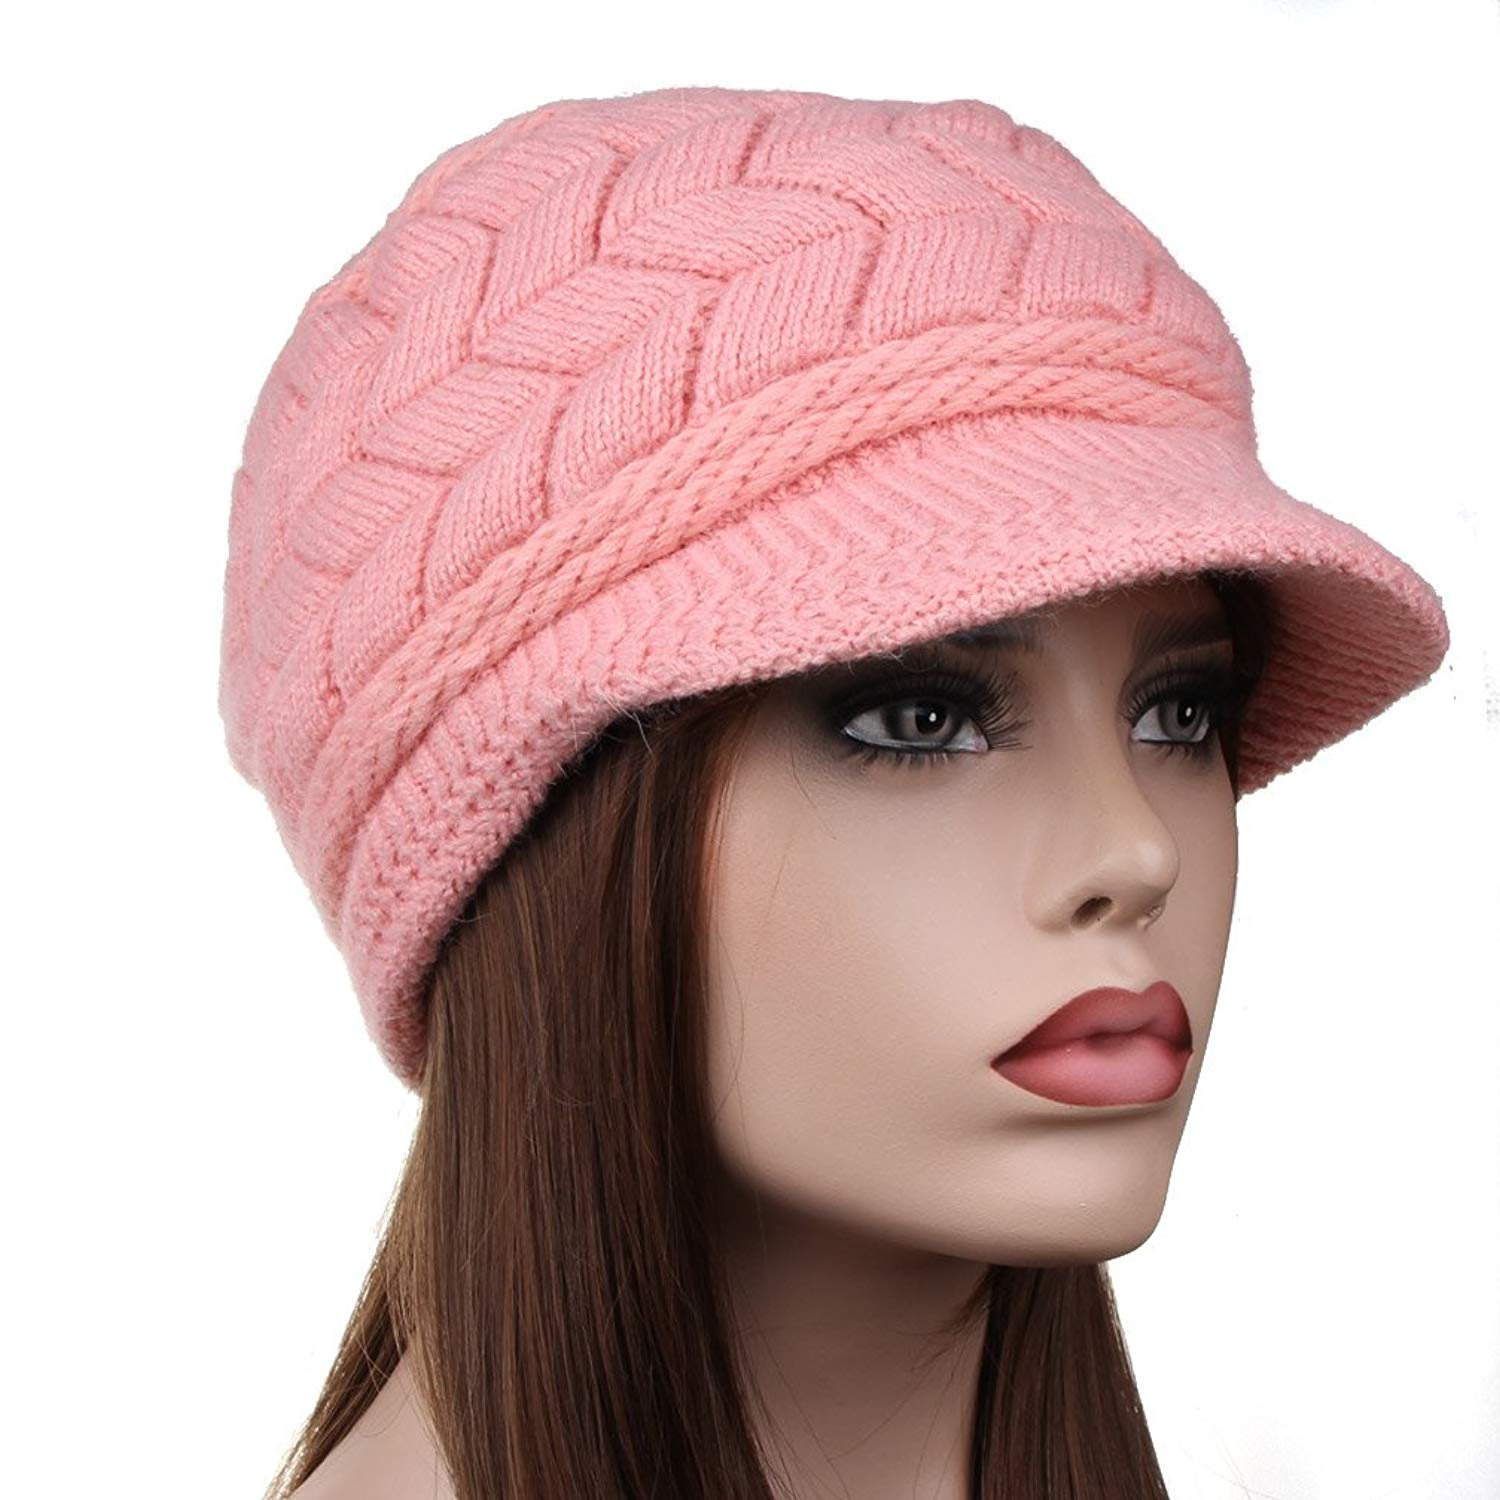 9989c4b6bf1 Get Quotations · TENGYI YiTeng Women Winter Warm Knit Hat Snow Ski Caps  With Visor